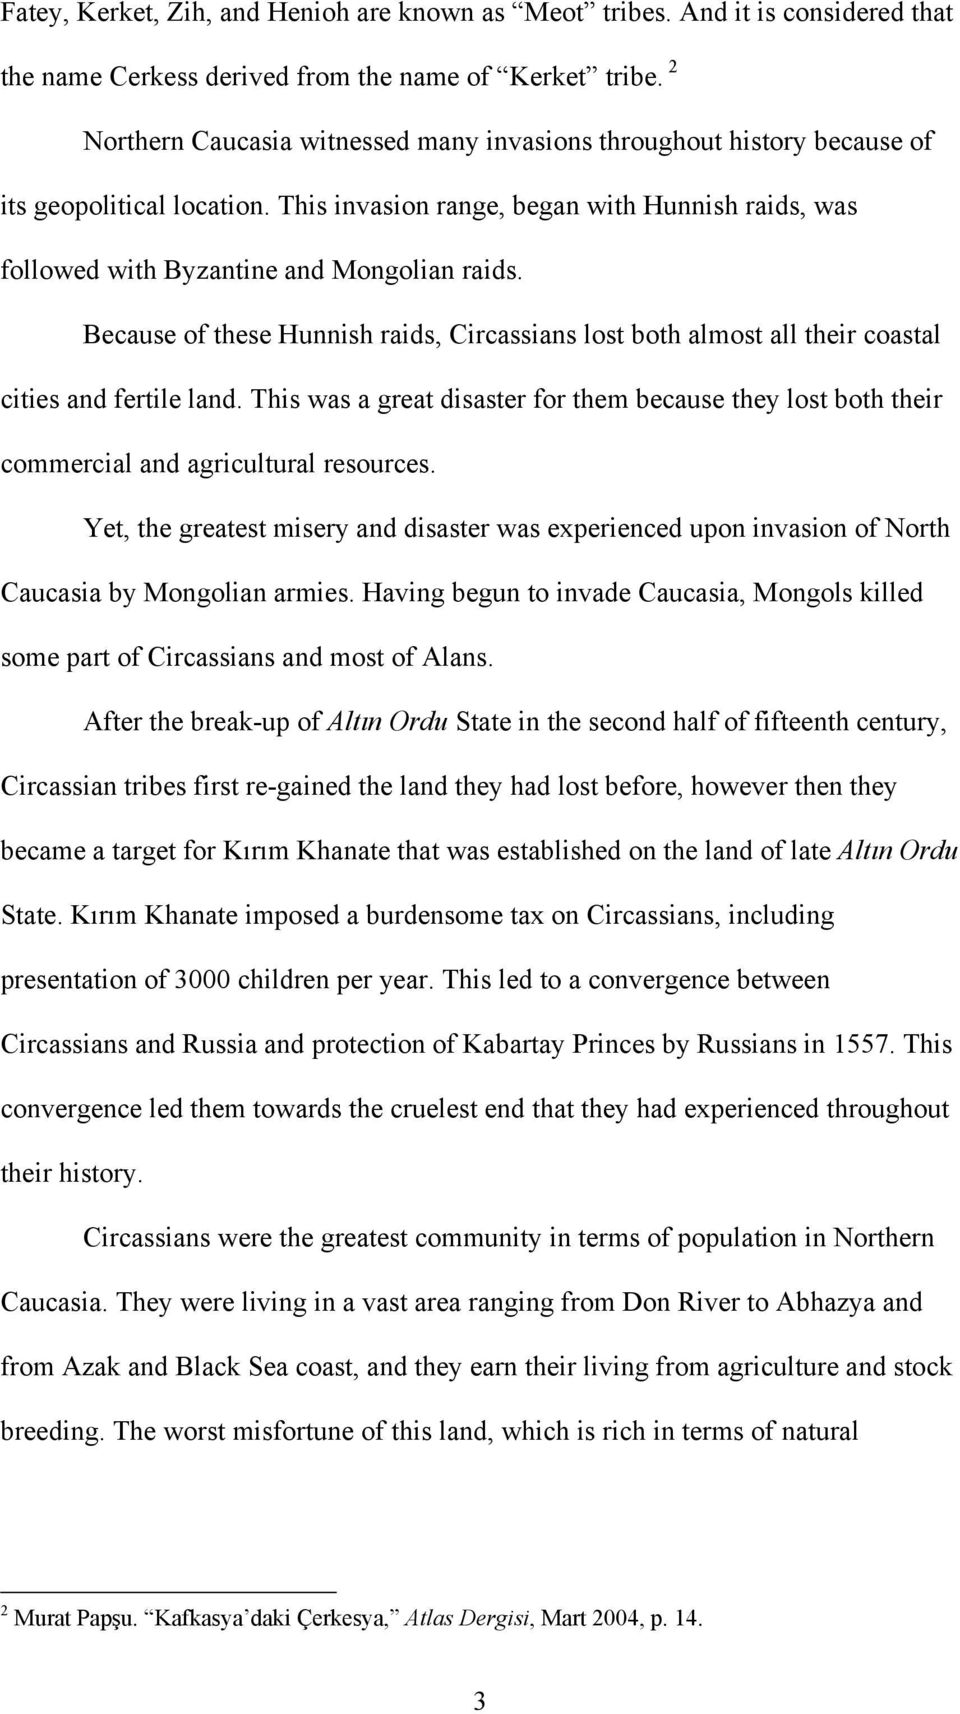 Because of these Hunnish raids, Circassians lost both almost all their coastal cities and fertile land.